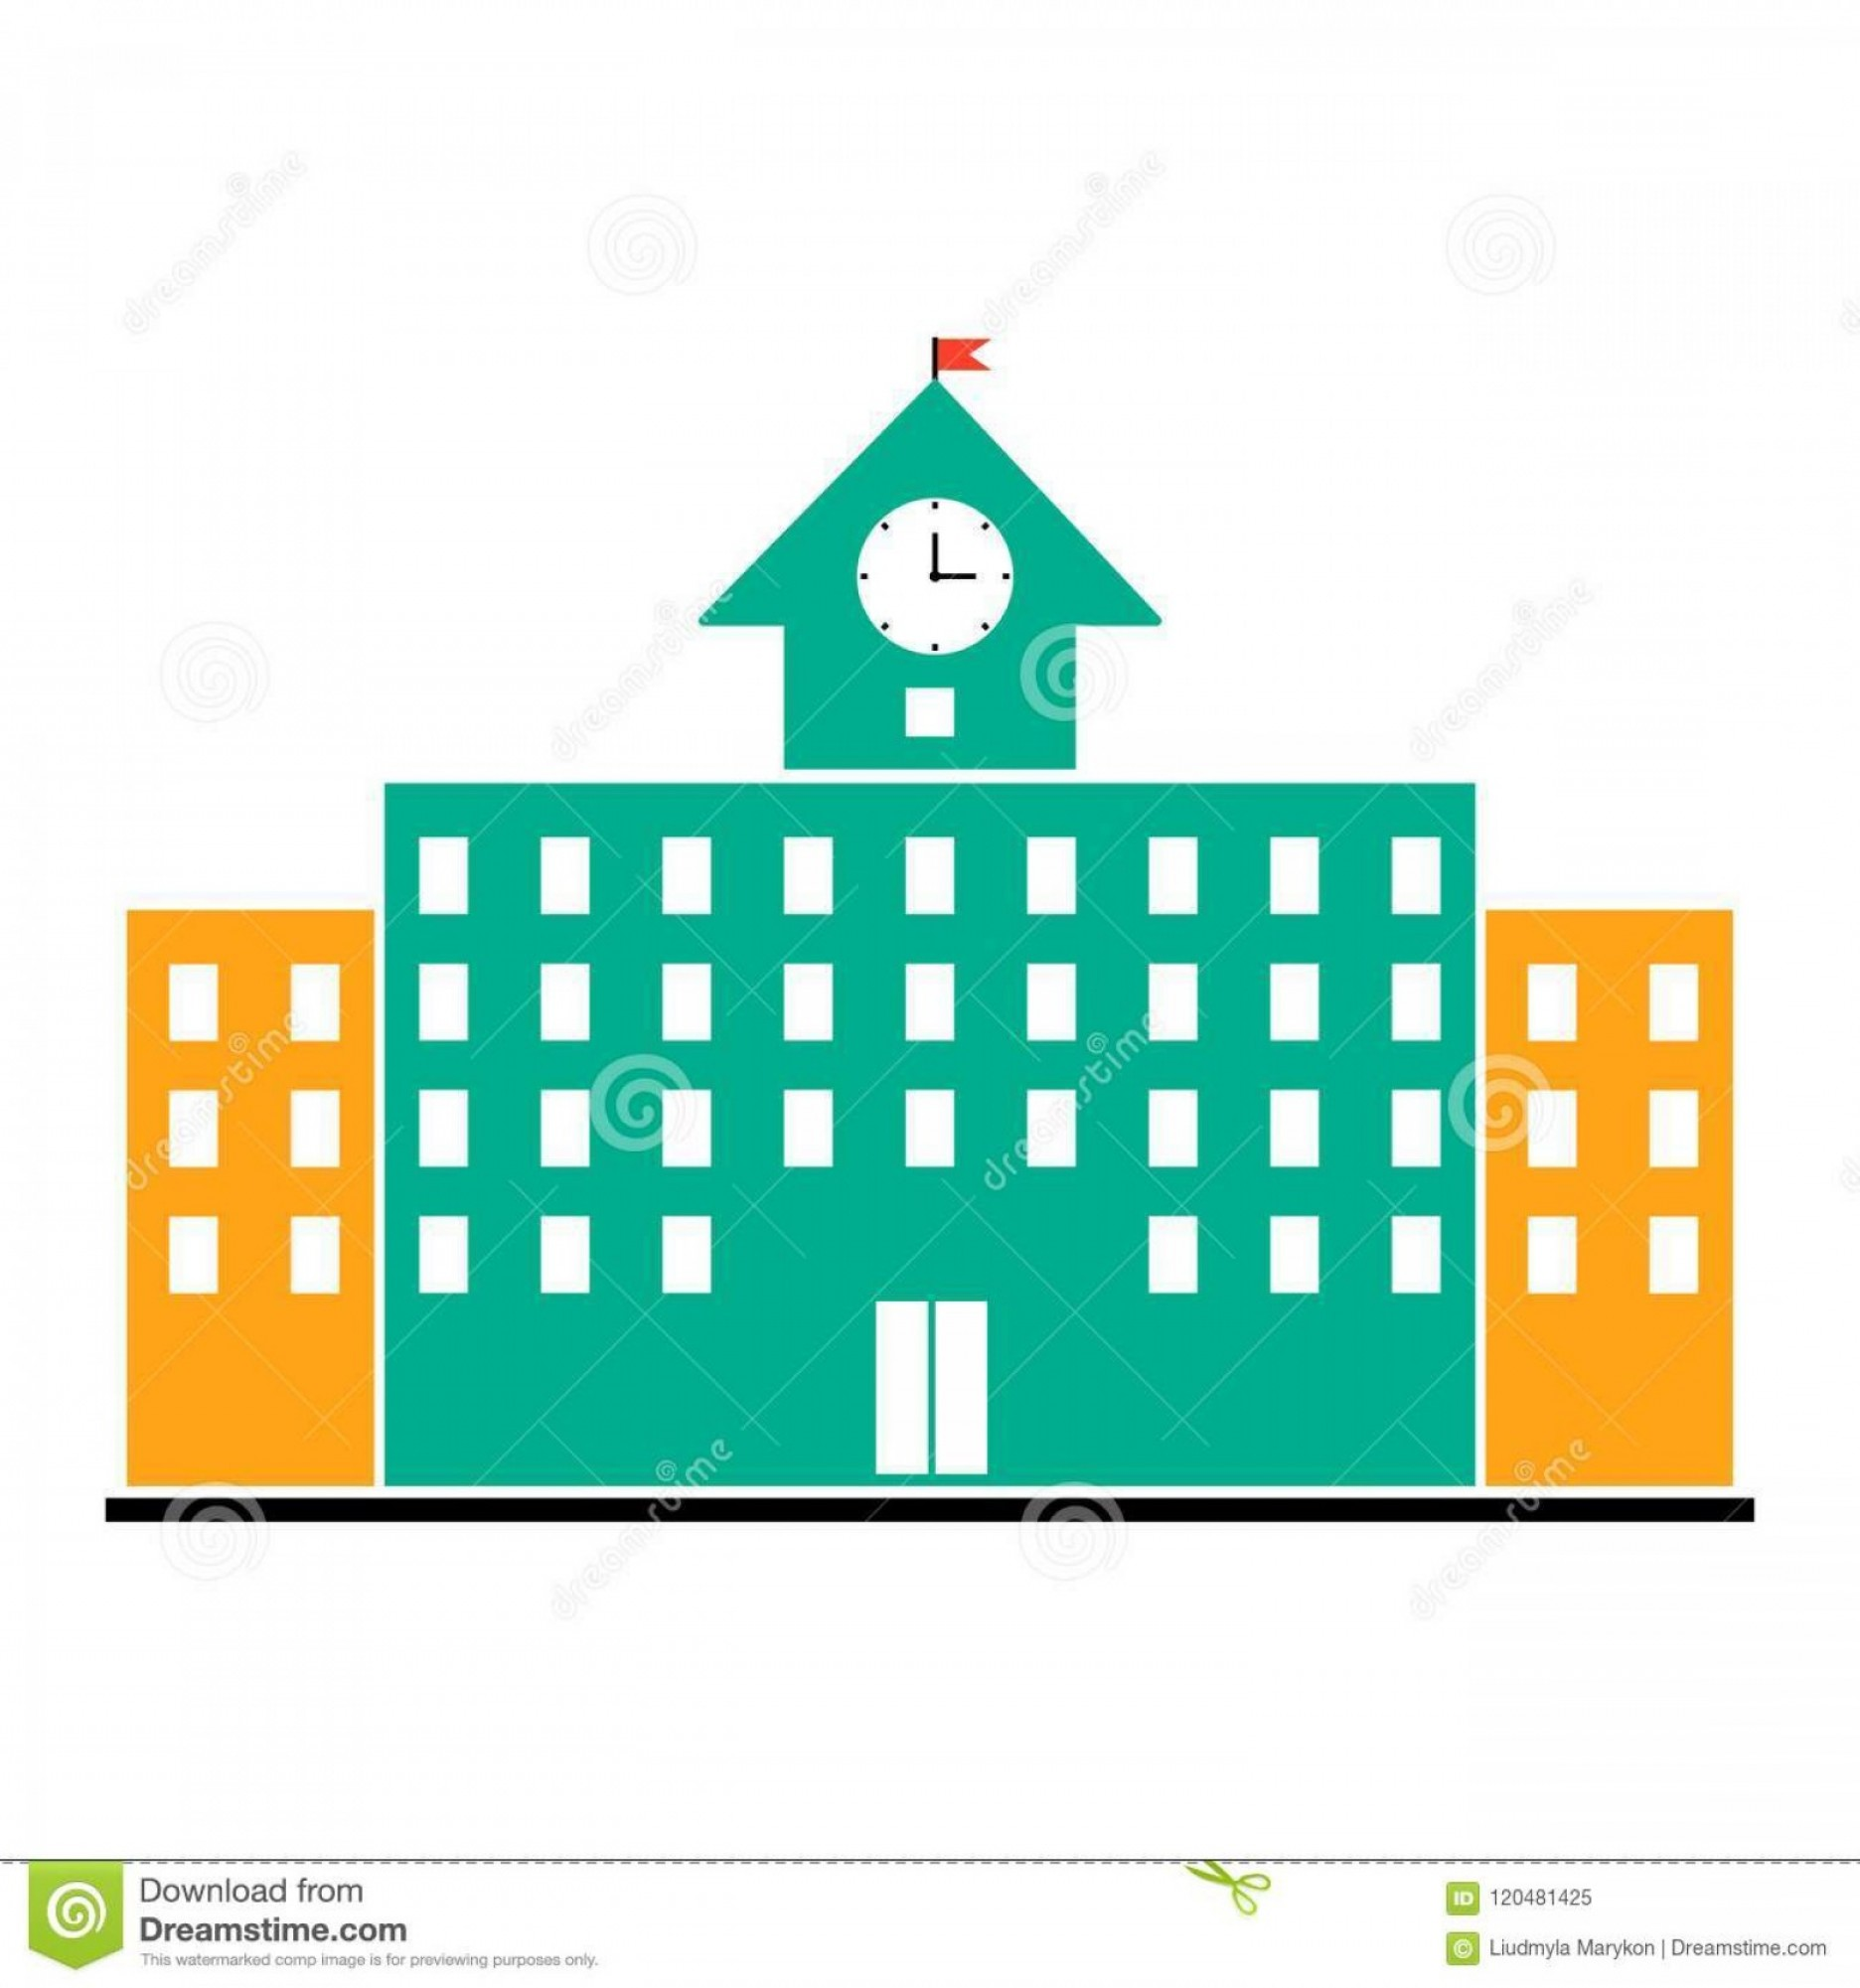 Vector Clip Art Red Schoolhouse: Vector School House College Building Isolated Education Icon Image